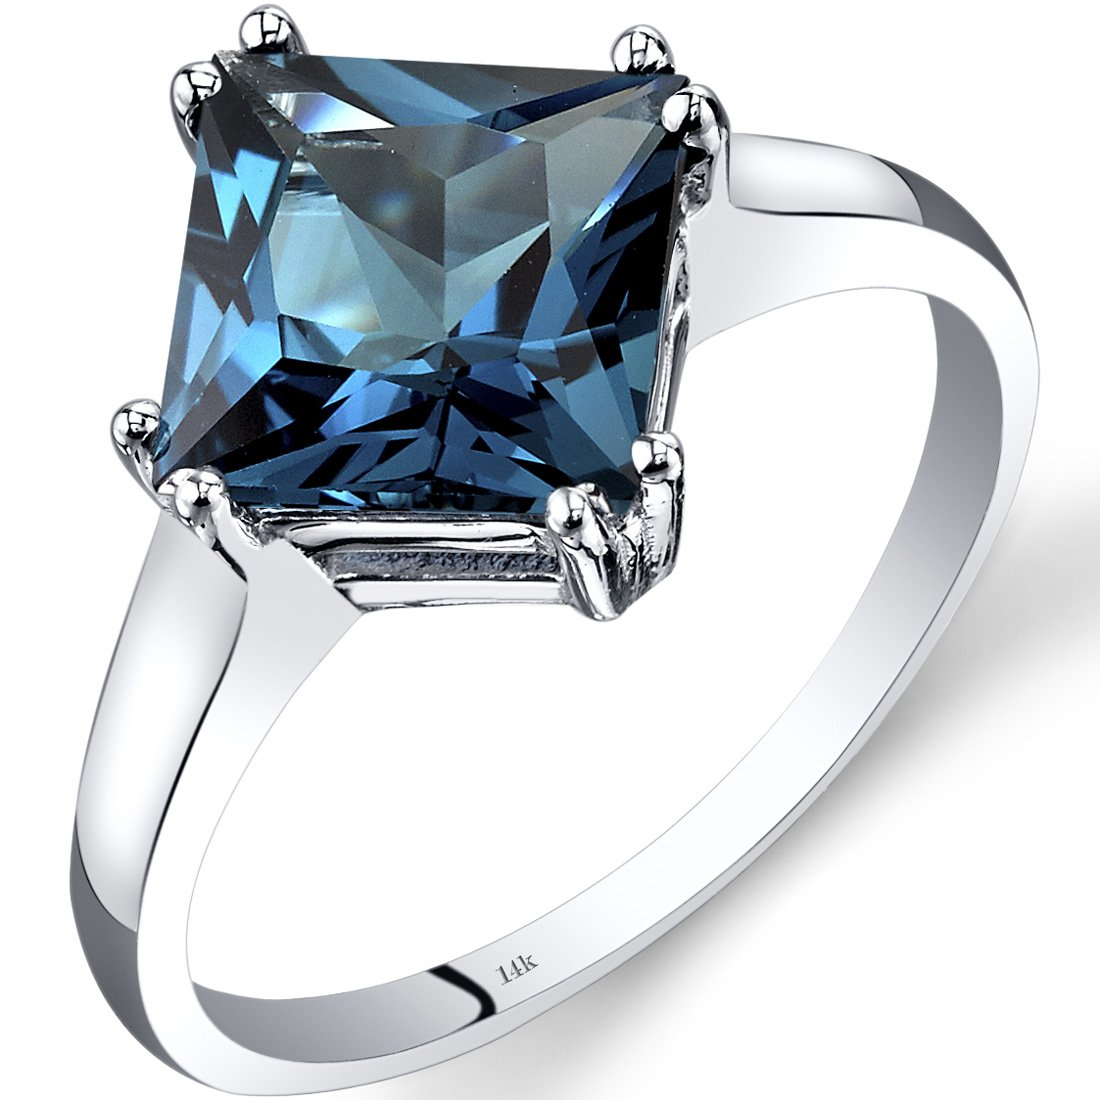 14K White Gold London Blue Topaz Princess Cut Ring 2.75 Carats Size 8